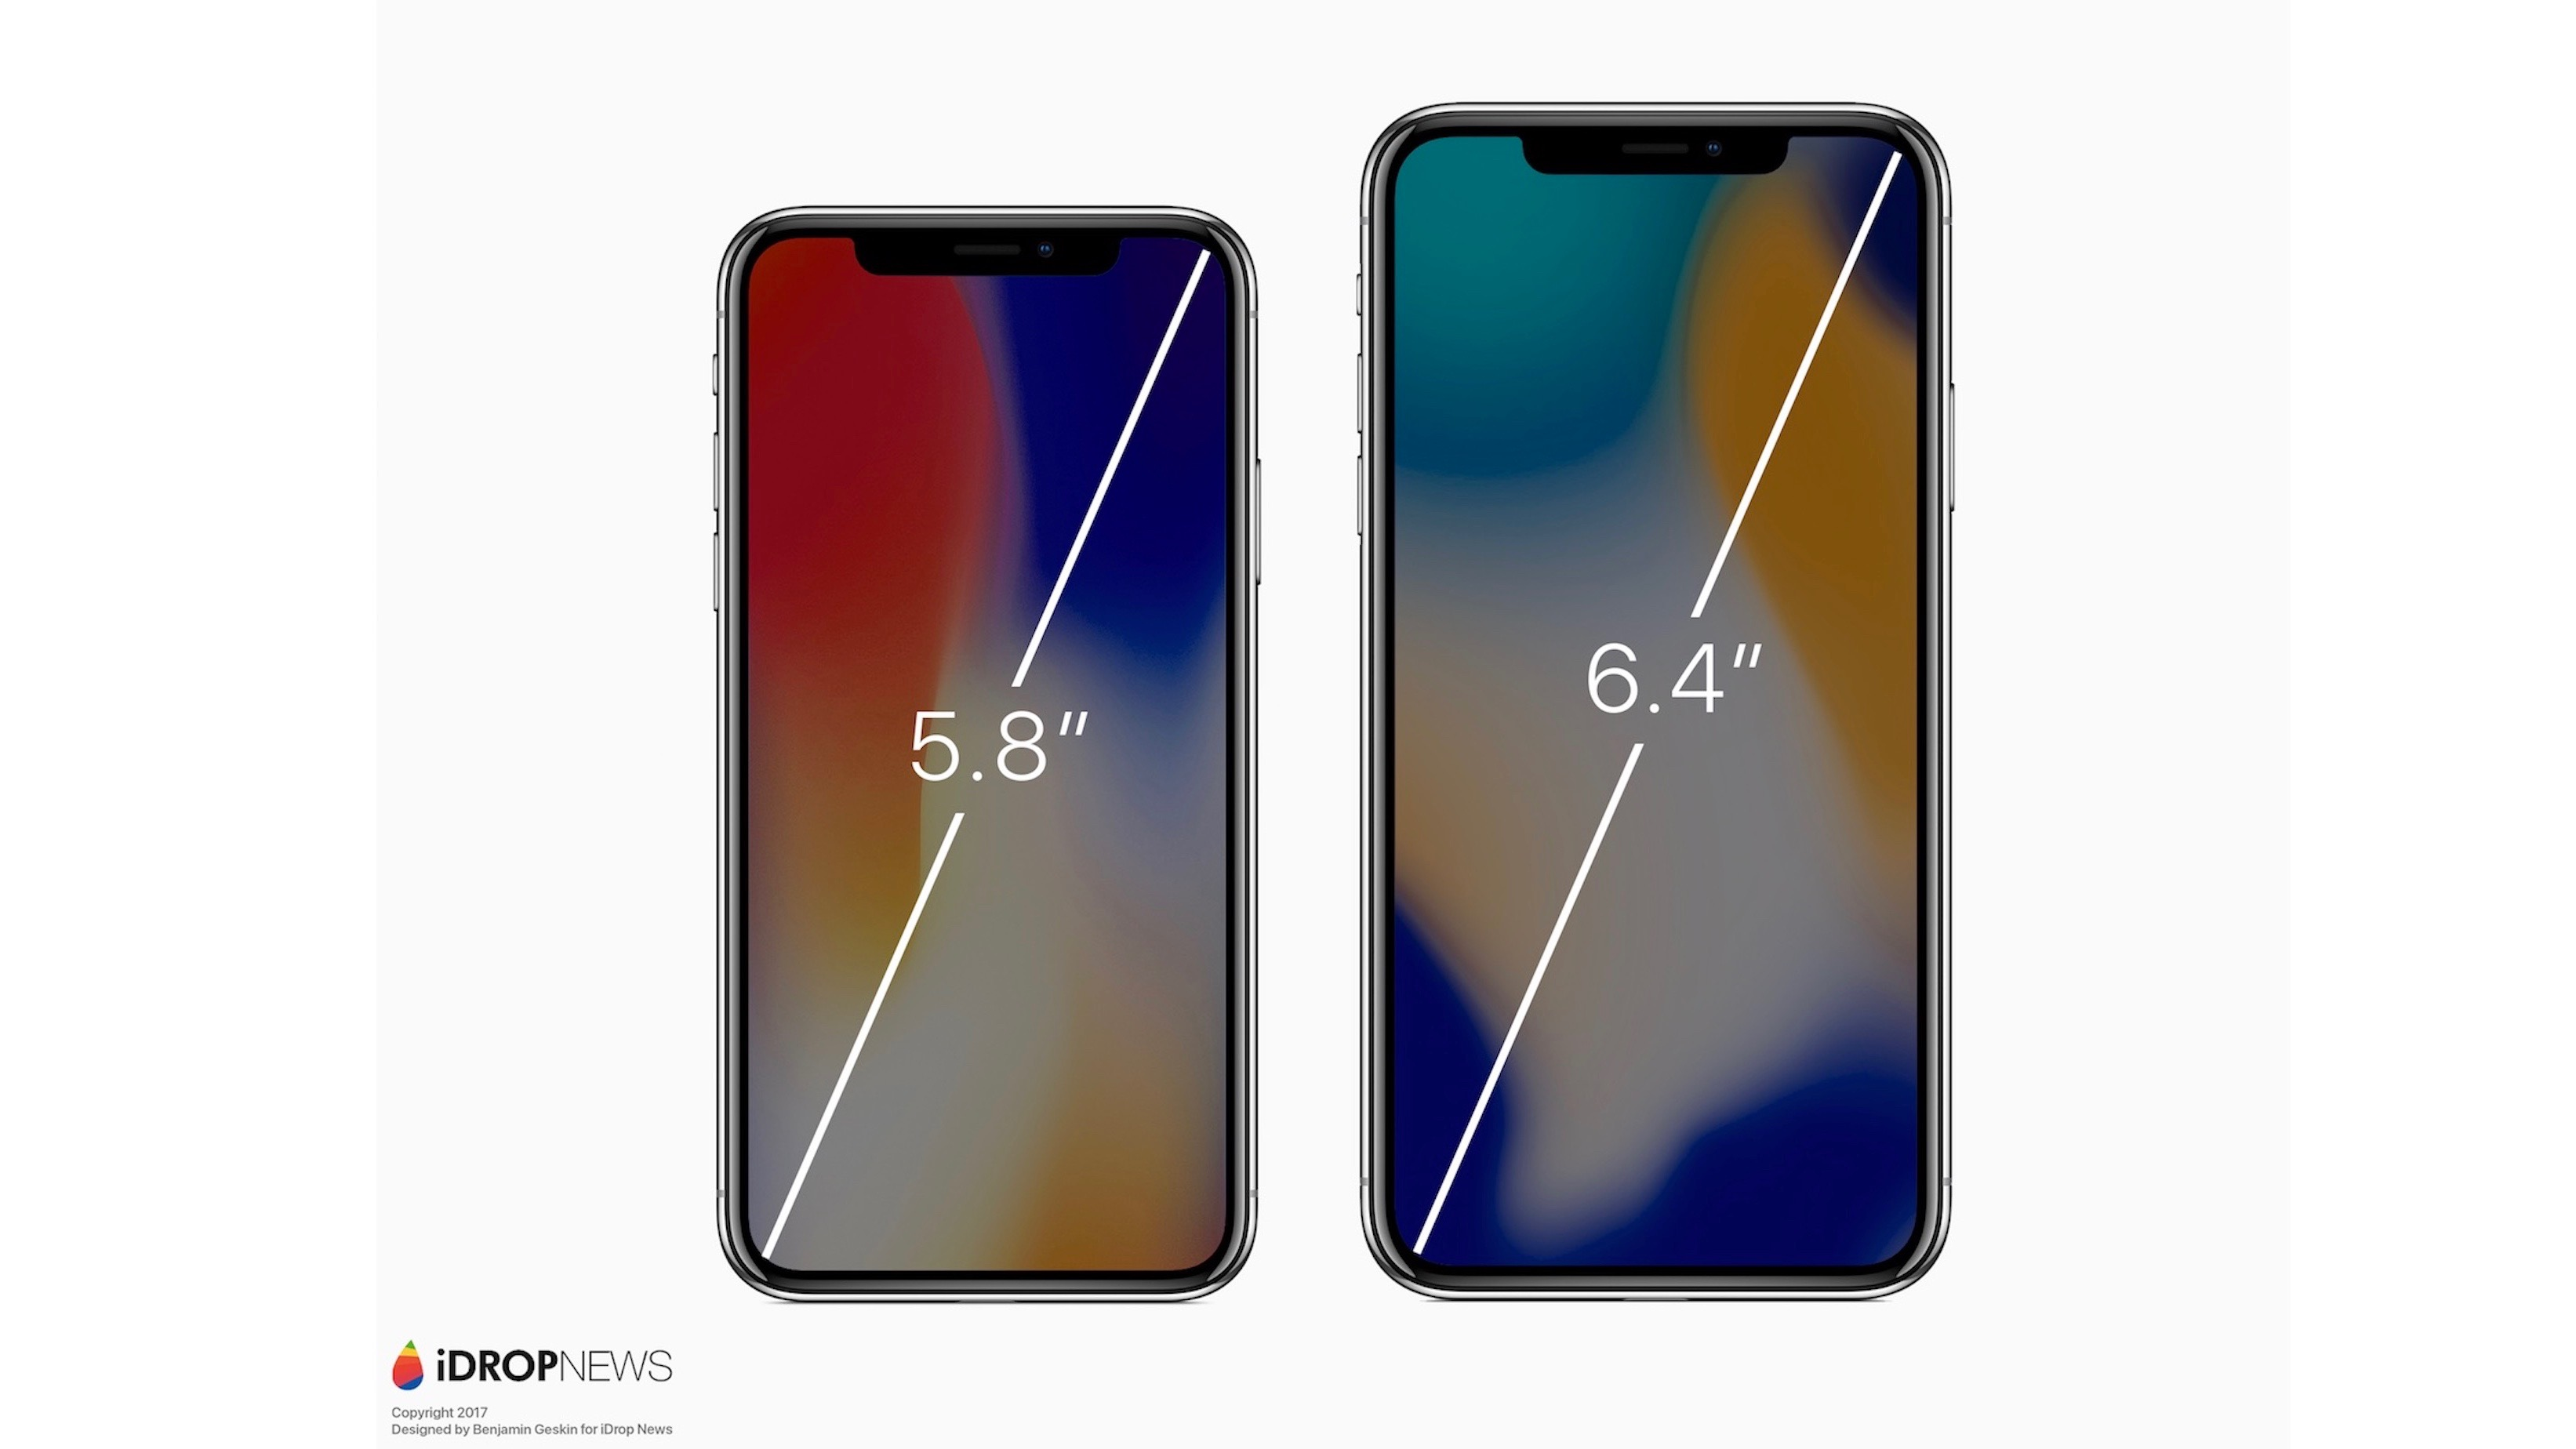 iphone 6 inches renders imagine rumored iphone x plus with 6 4 inch 11346